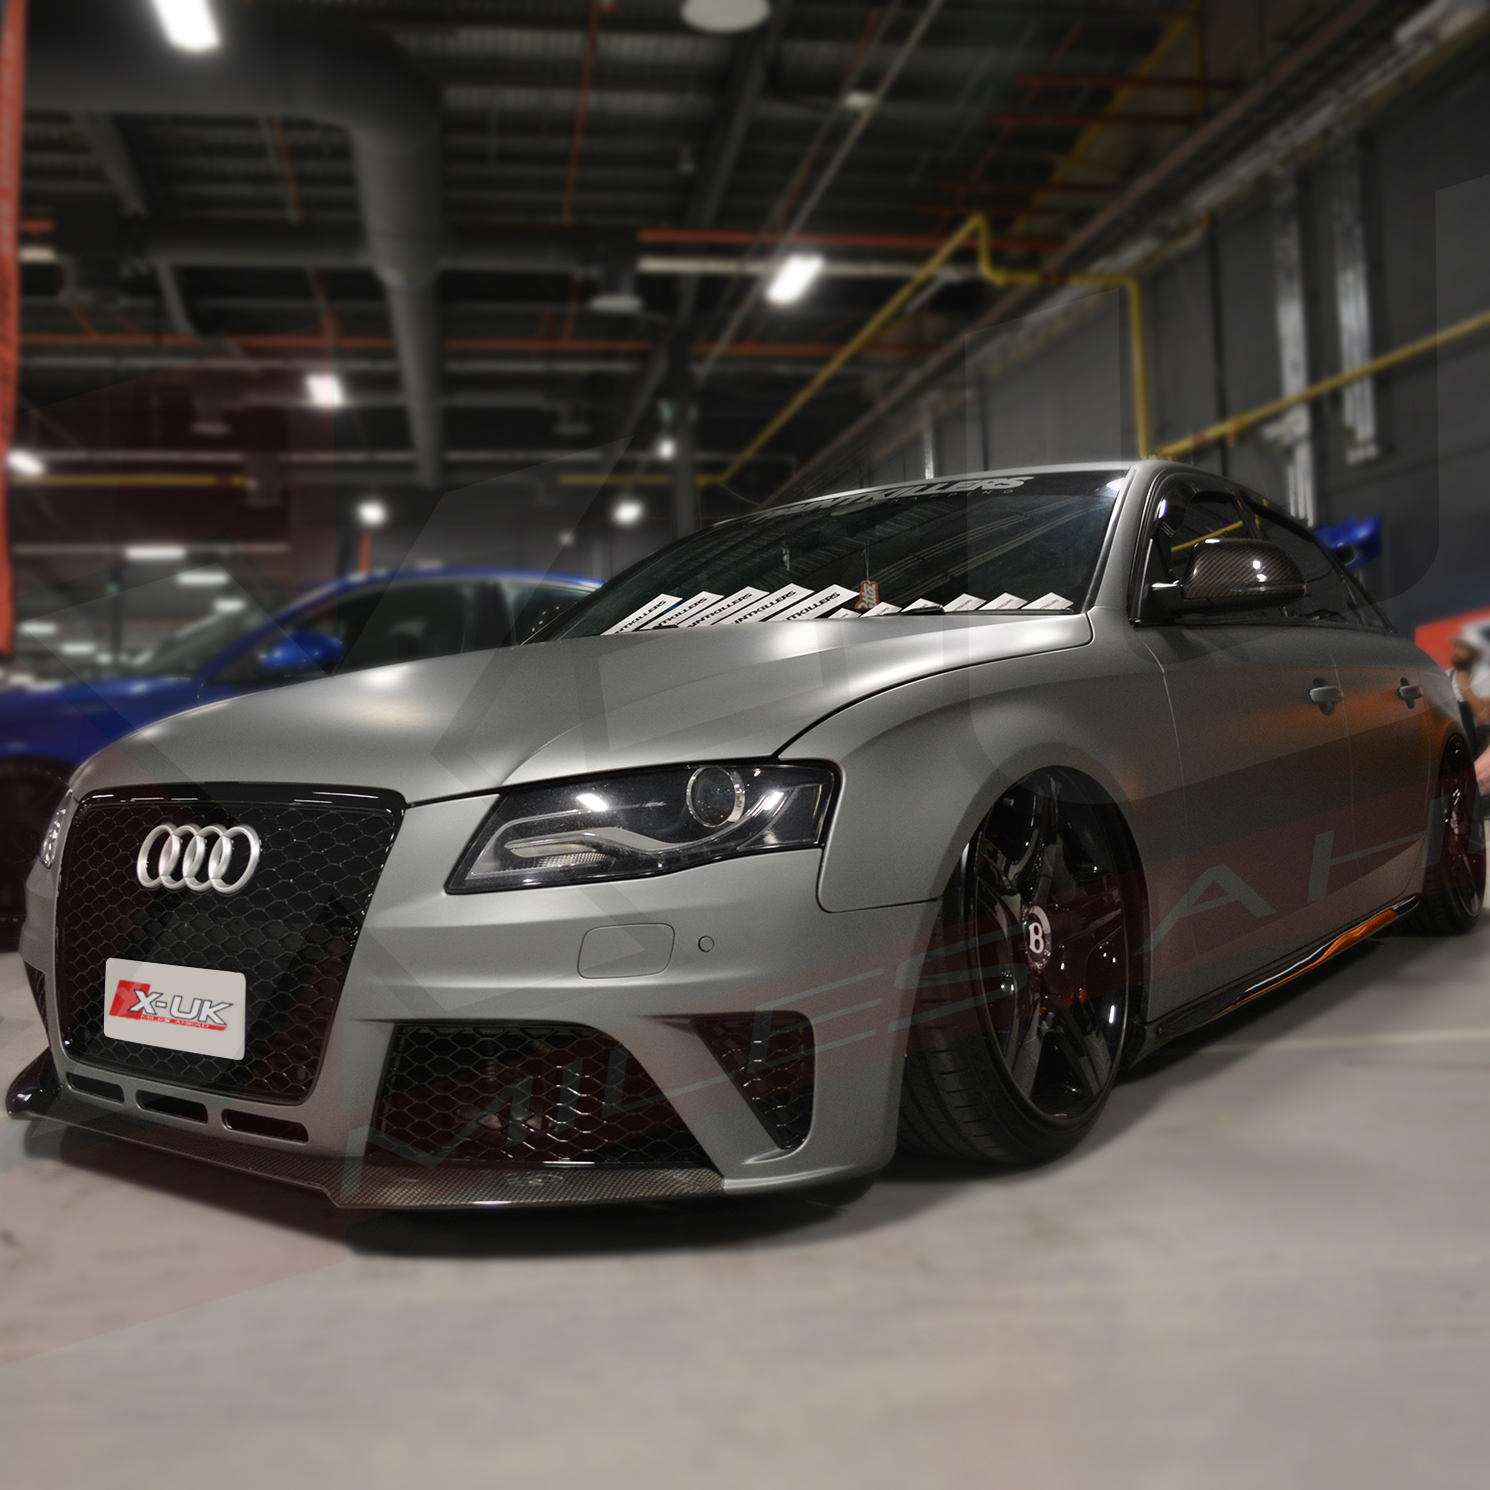 Audi A4 S4 2008 2012 Quot B8 Quot To Rs4 Style Front Bumper Conversion